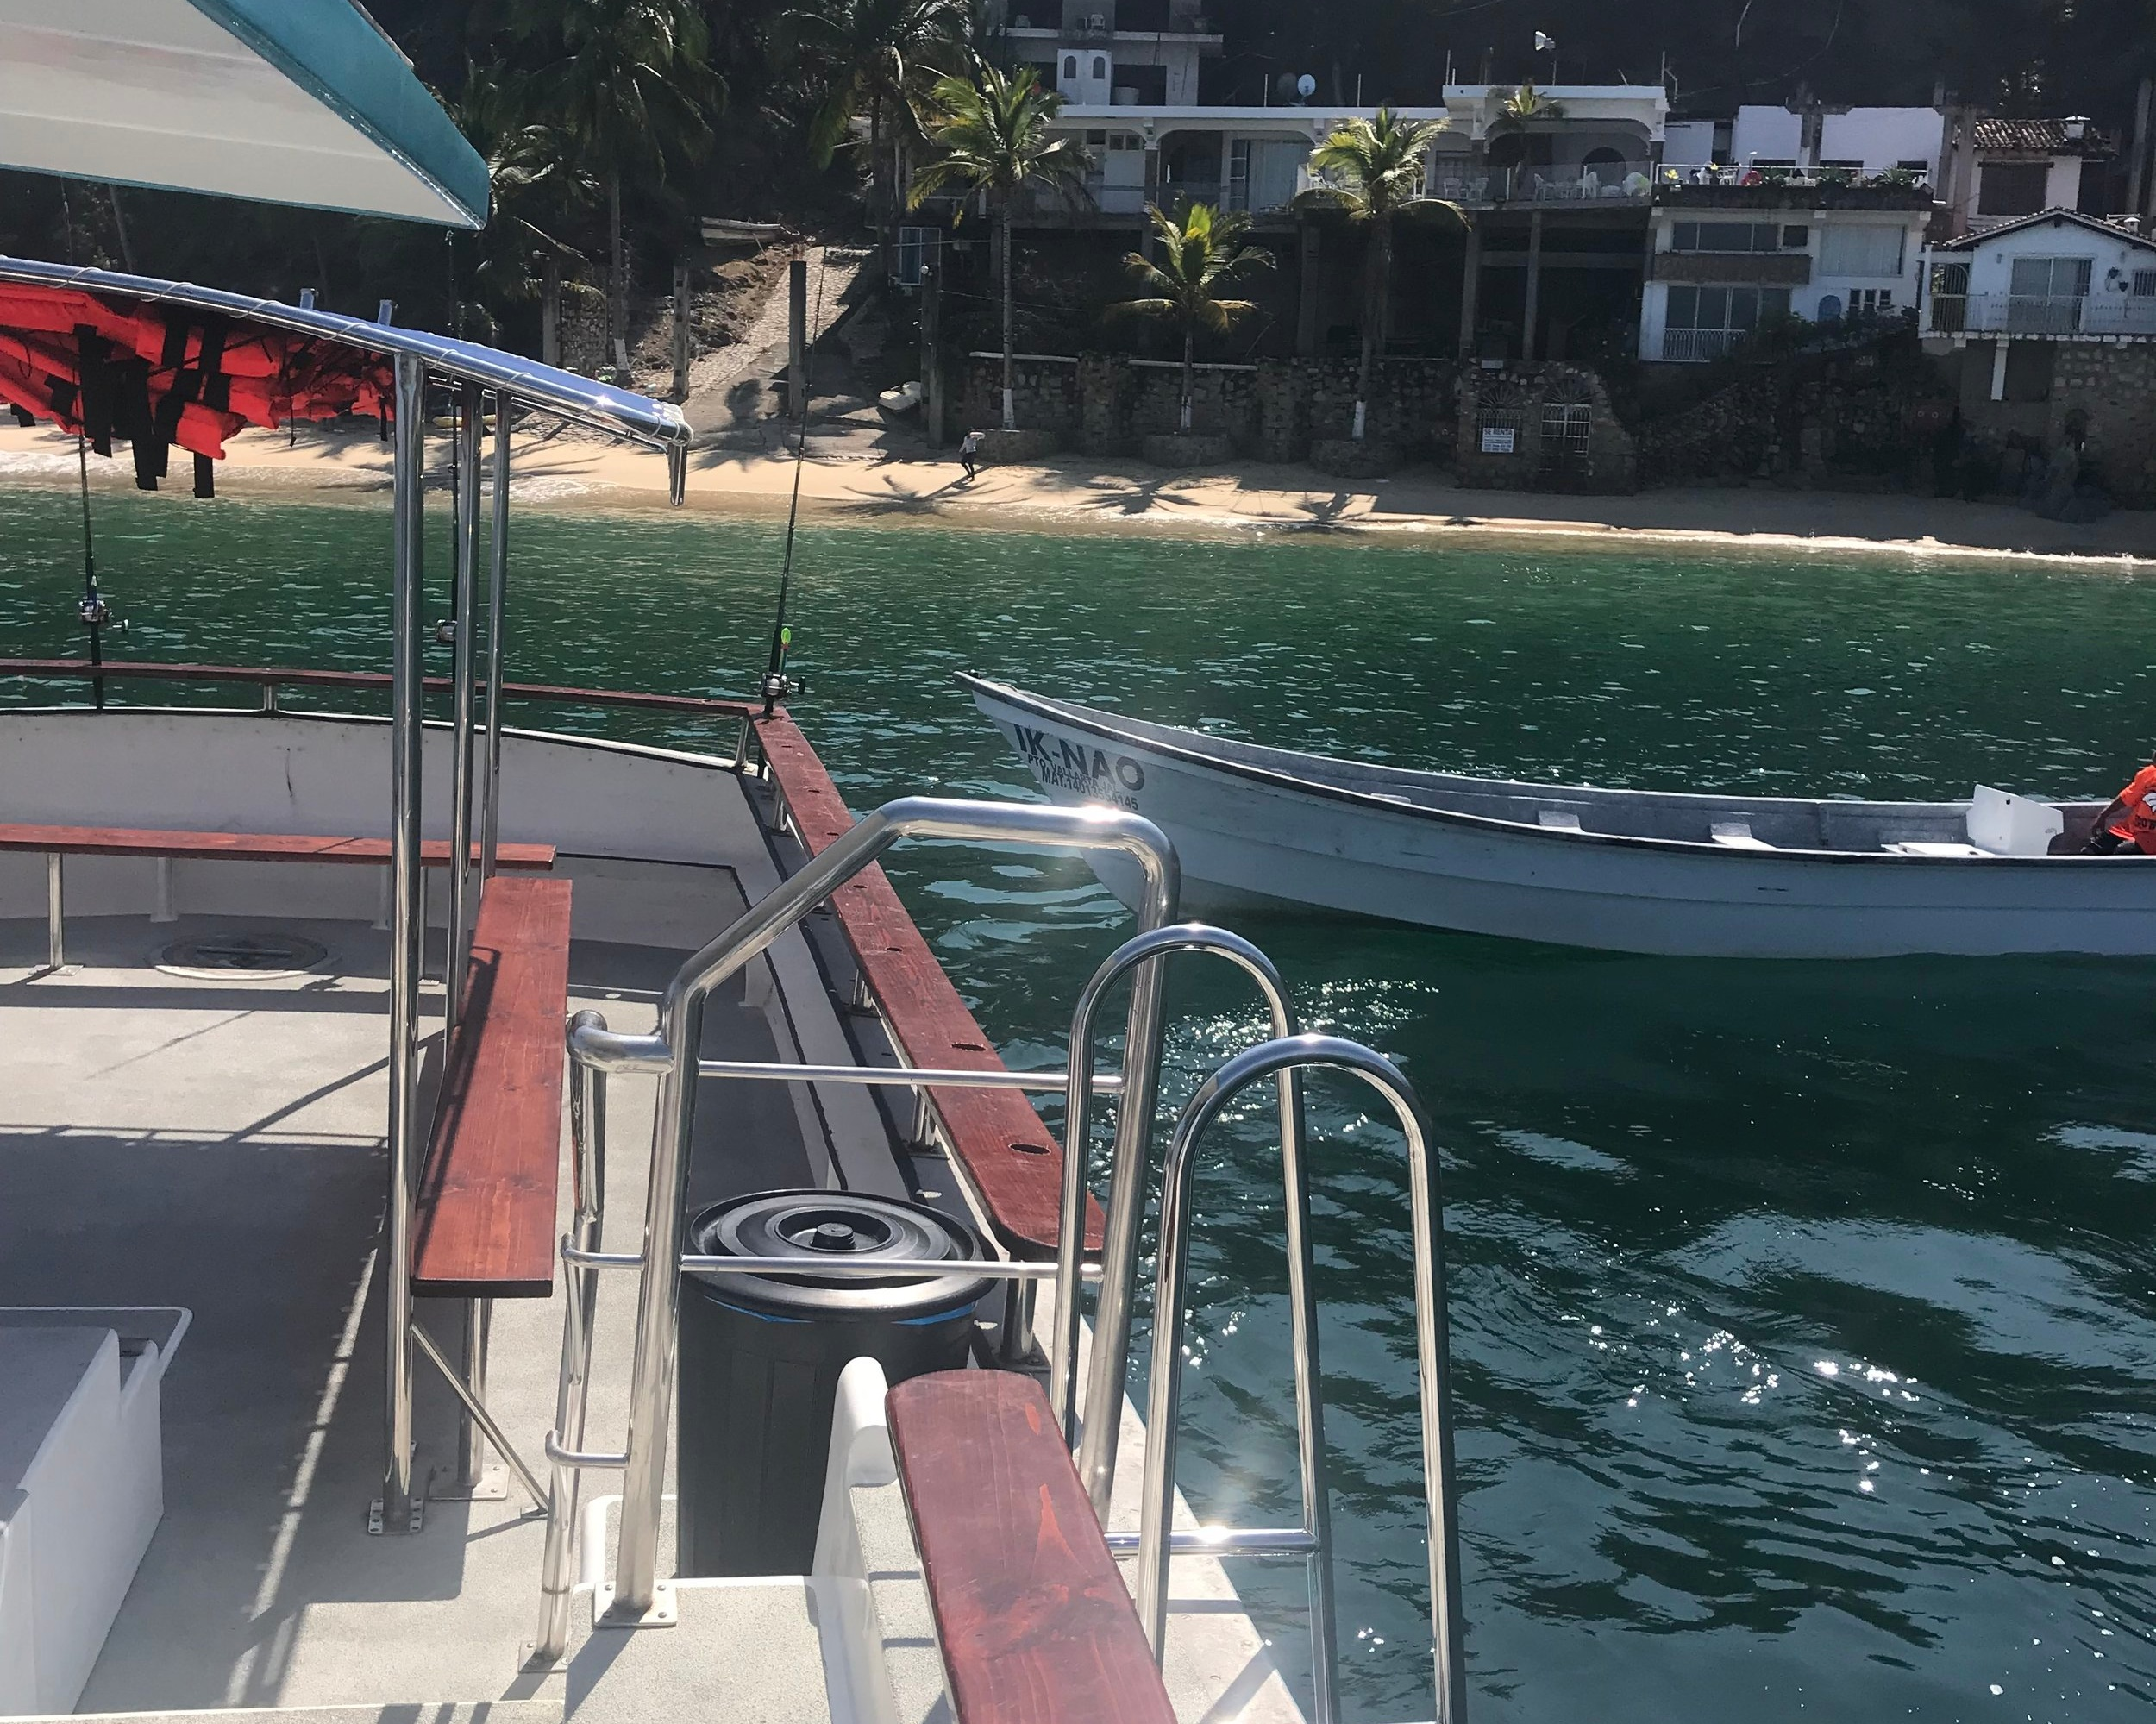 DIFFERENT BOATS AVAILABLE - Our boats can accomodate from 2 to 40 people!